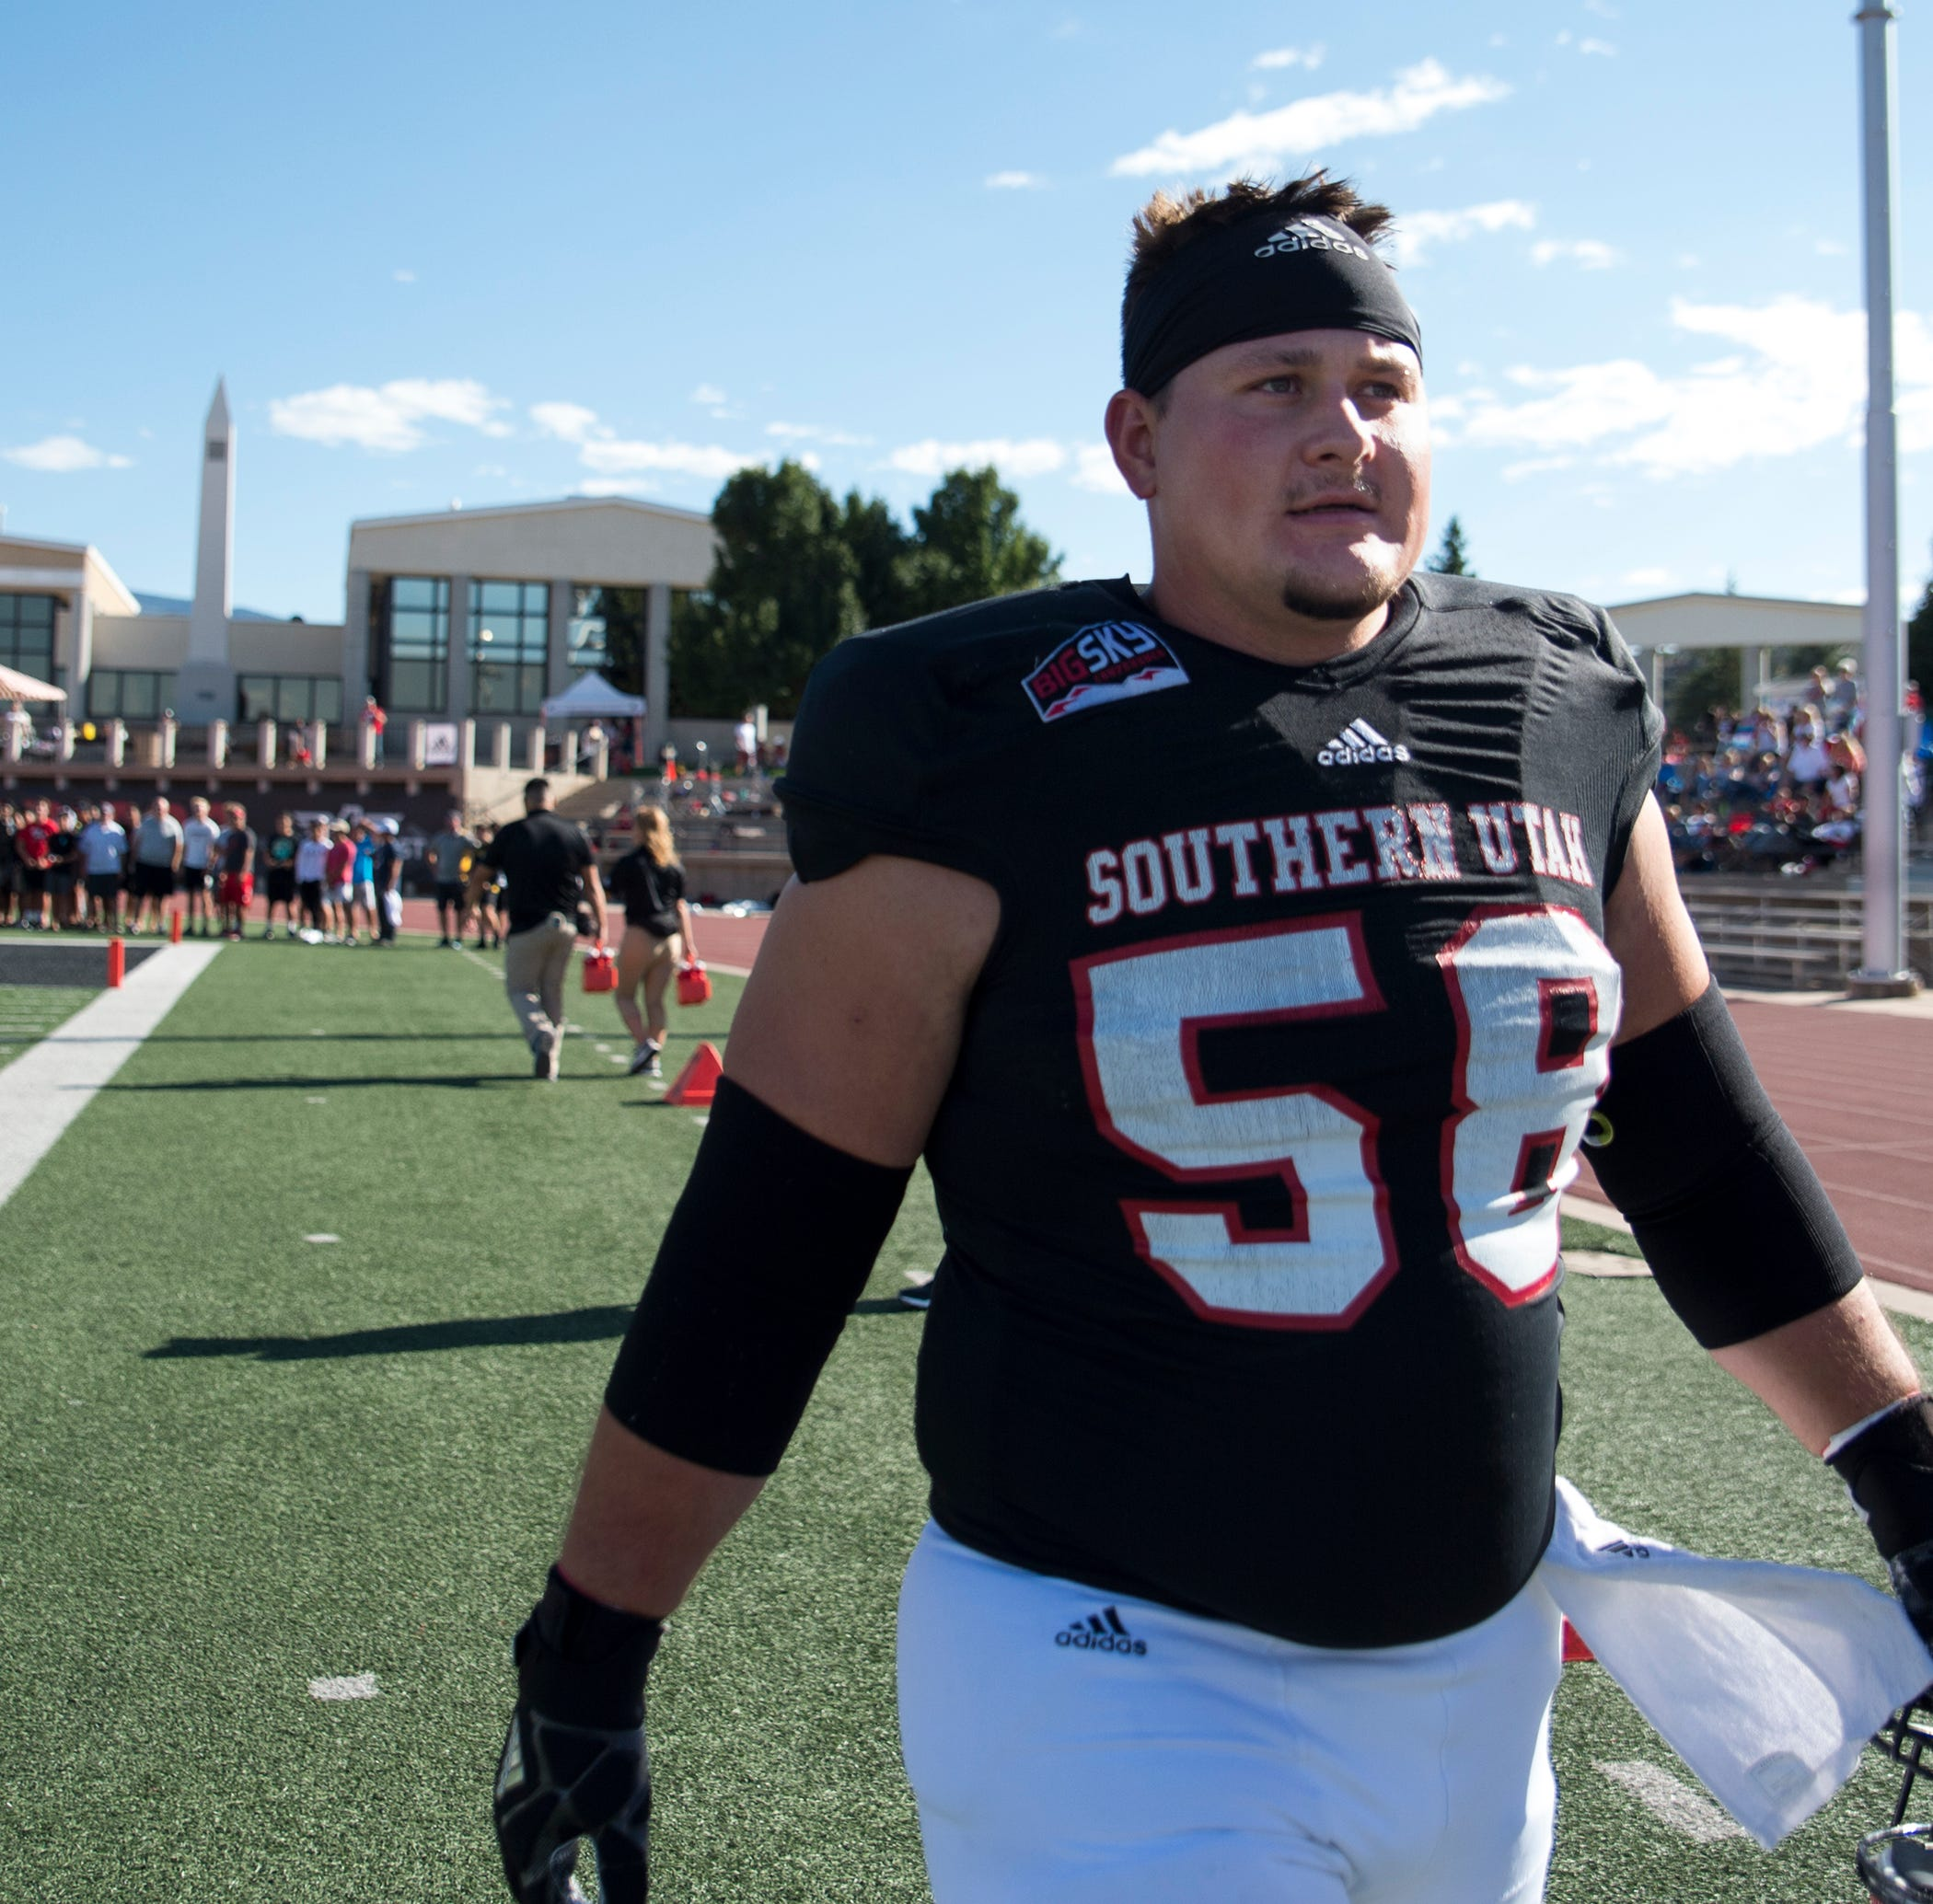 Offensive lineman Zach Larsen, a team captain, says he is trying to lead by example as Southern Utah looks to bounce back from a difficult 2018 season.